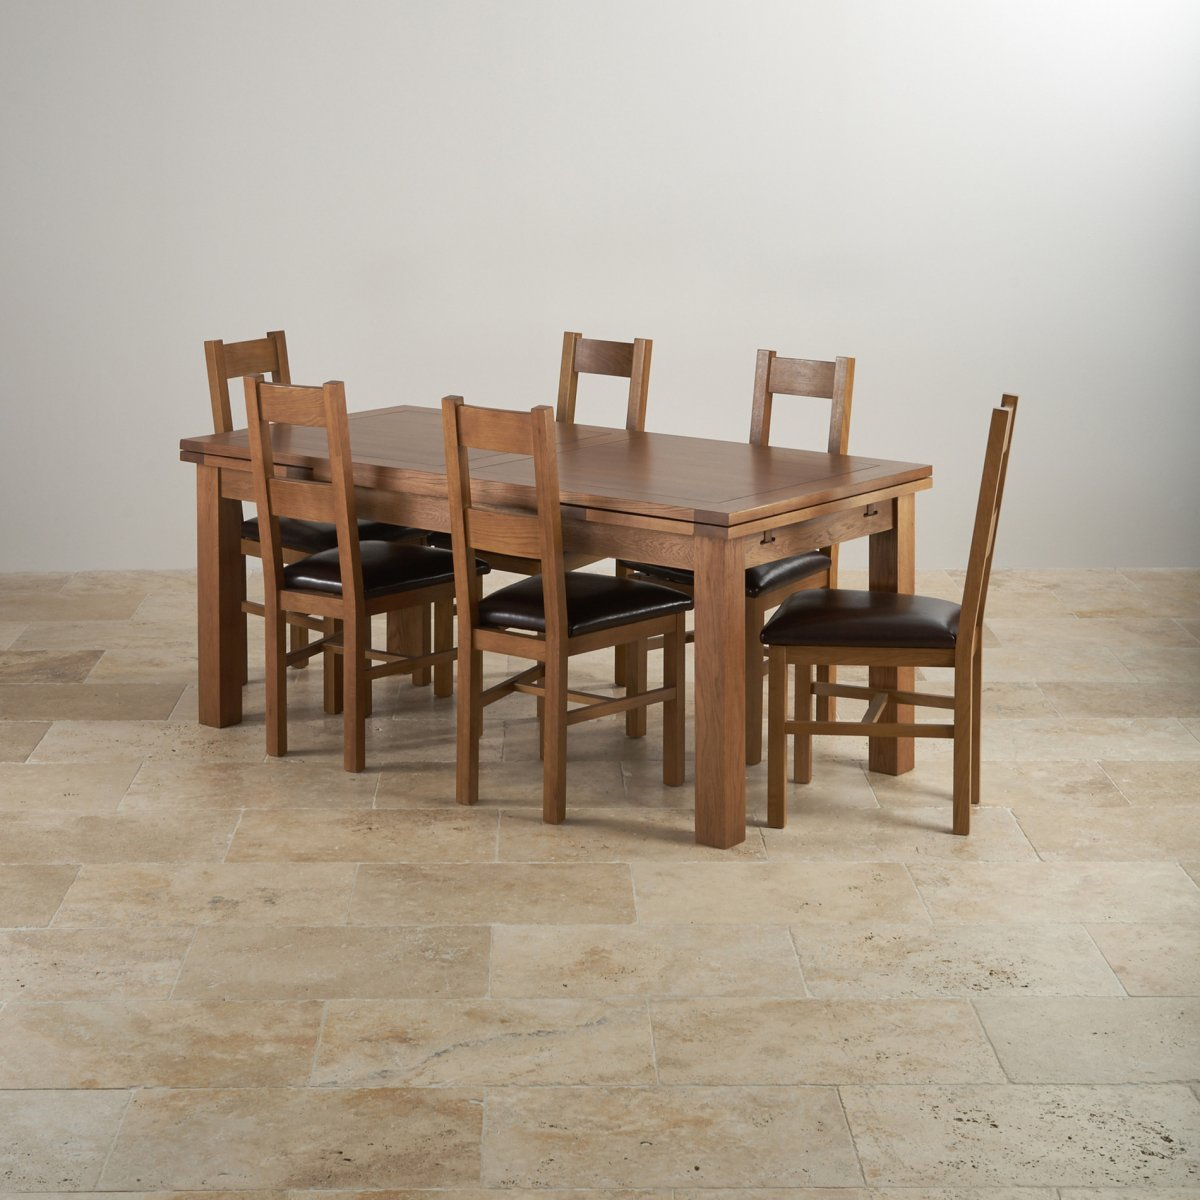 Rustic oak dining set ft table with chairs